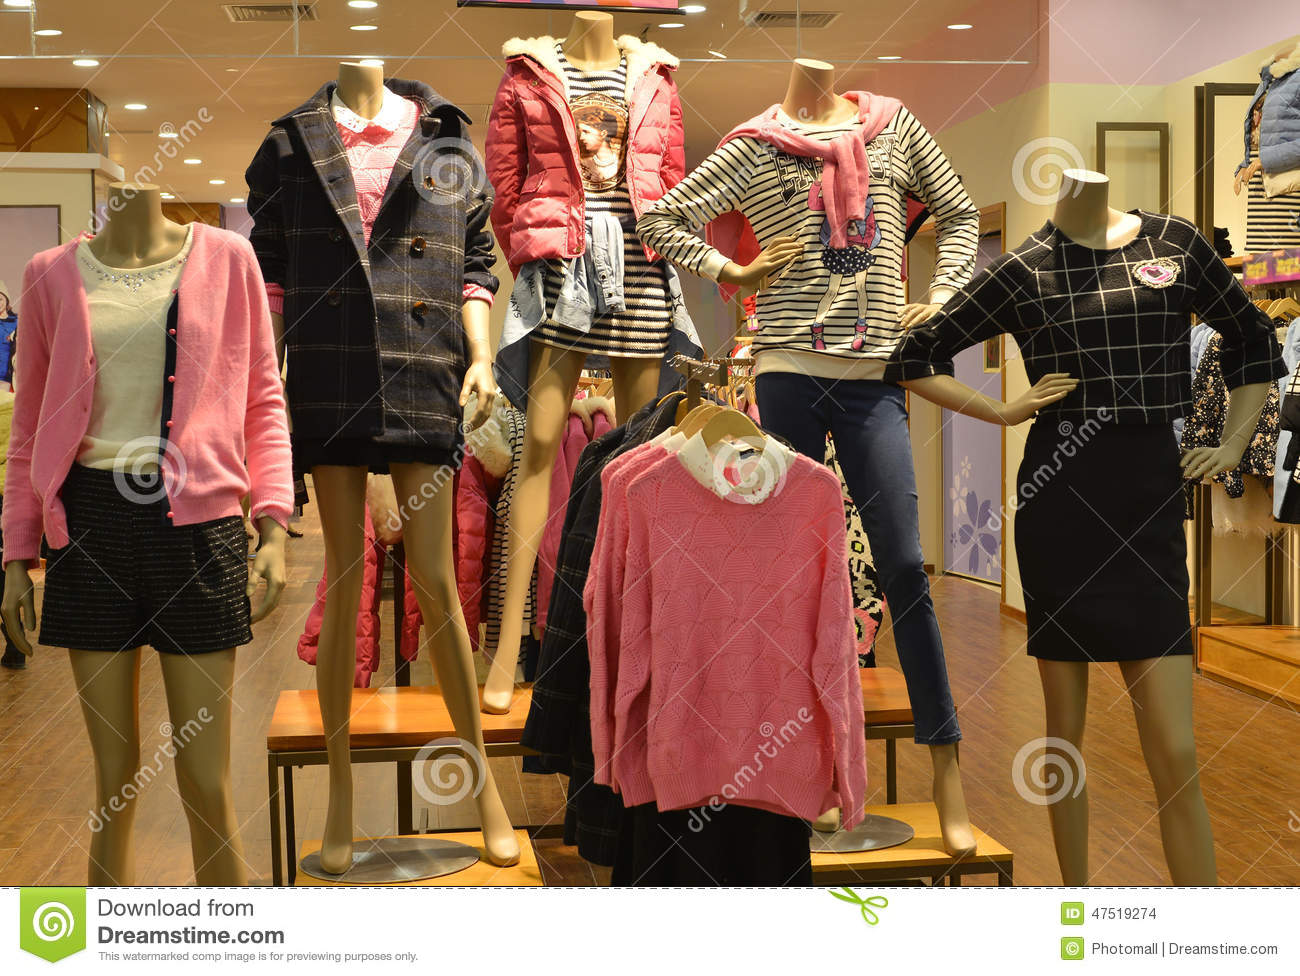 aef0d7c8a06 China clothing stores. Clothing stores